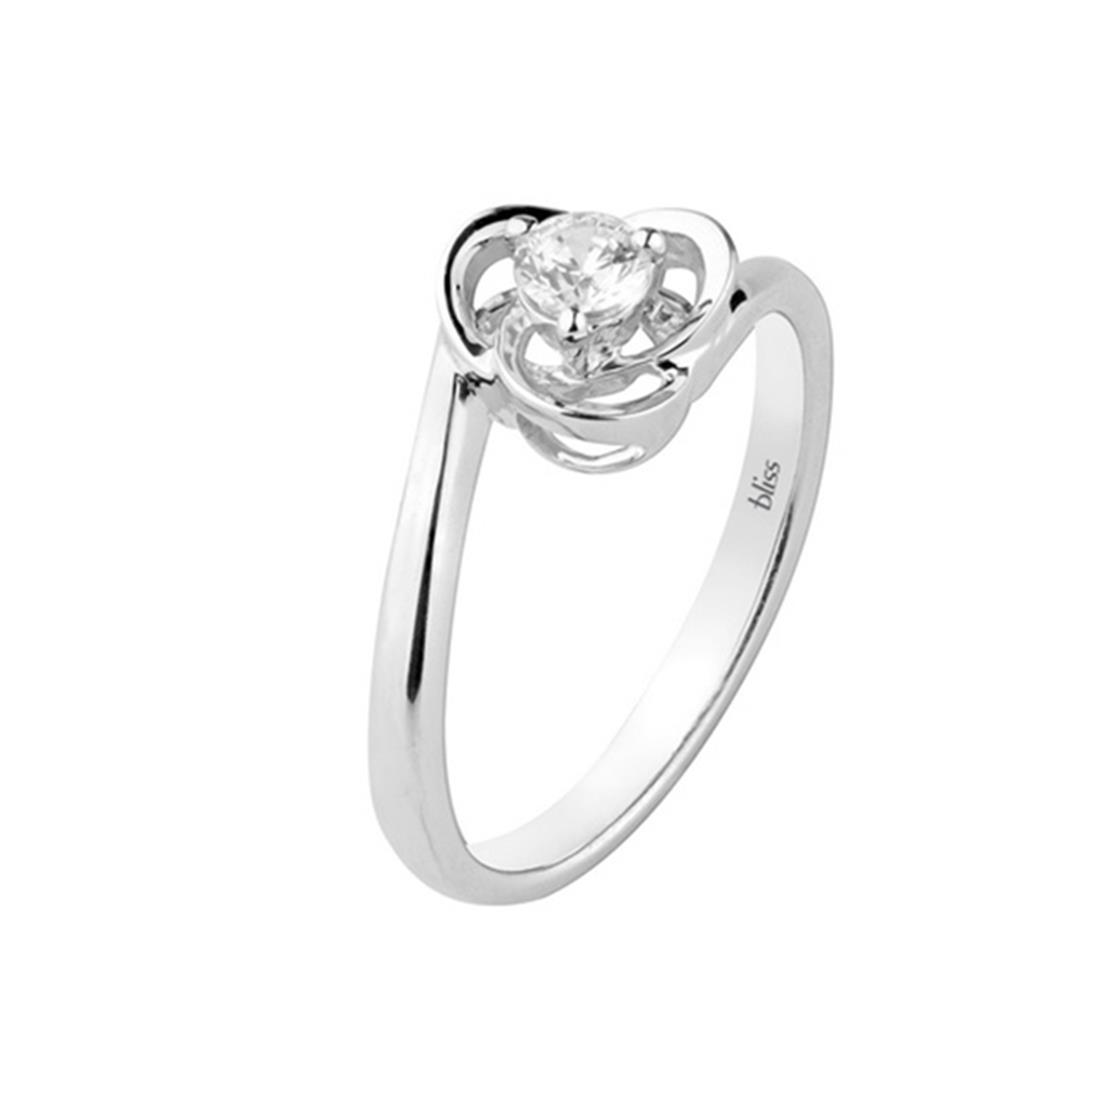 Anello con diamante - BLISS